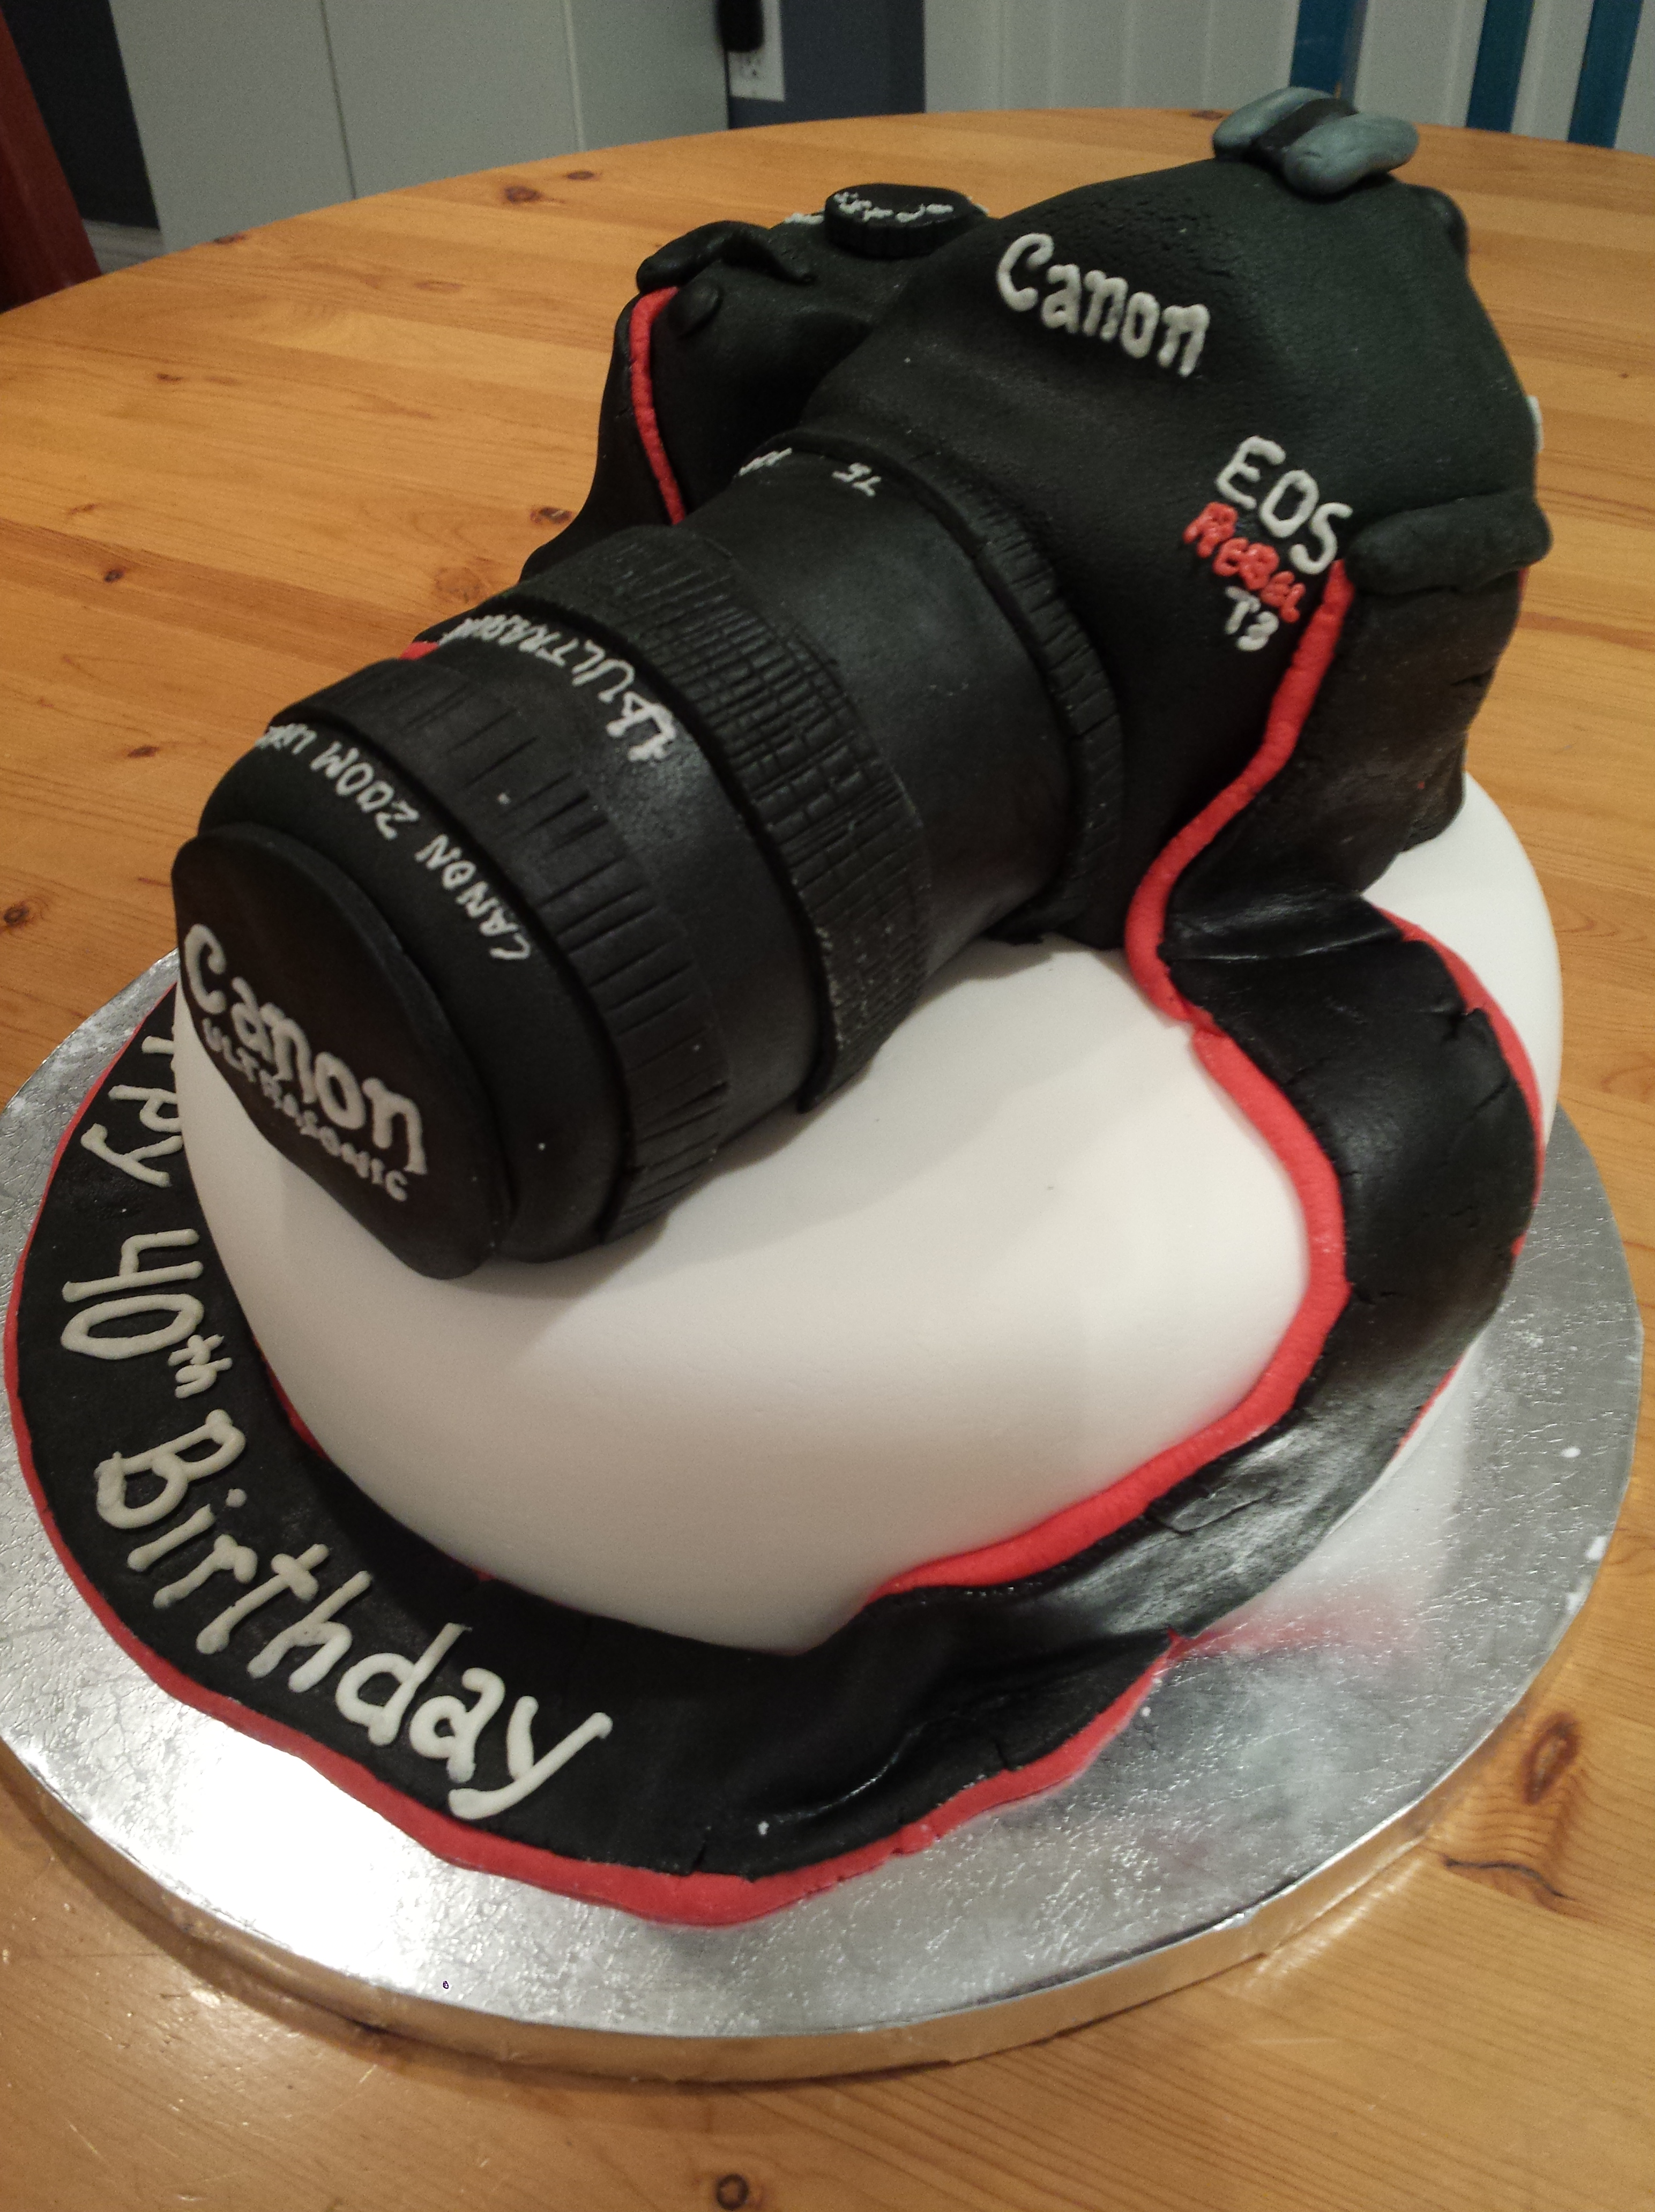 Camera Images For Cake : canon camera cake   Erica s Edibles